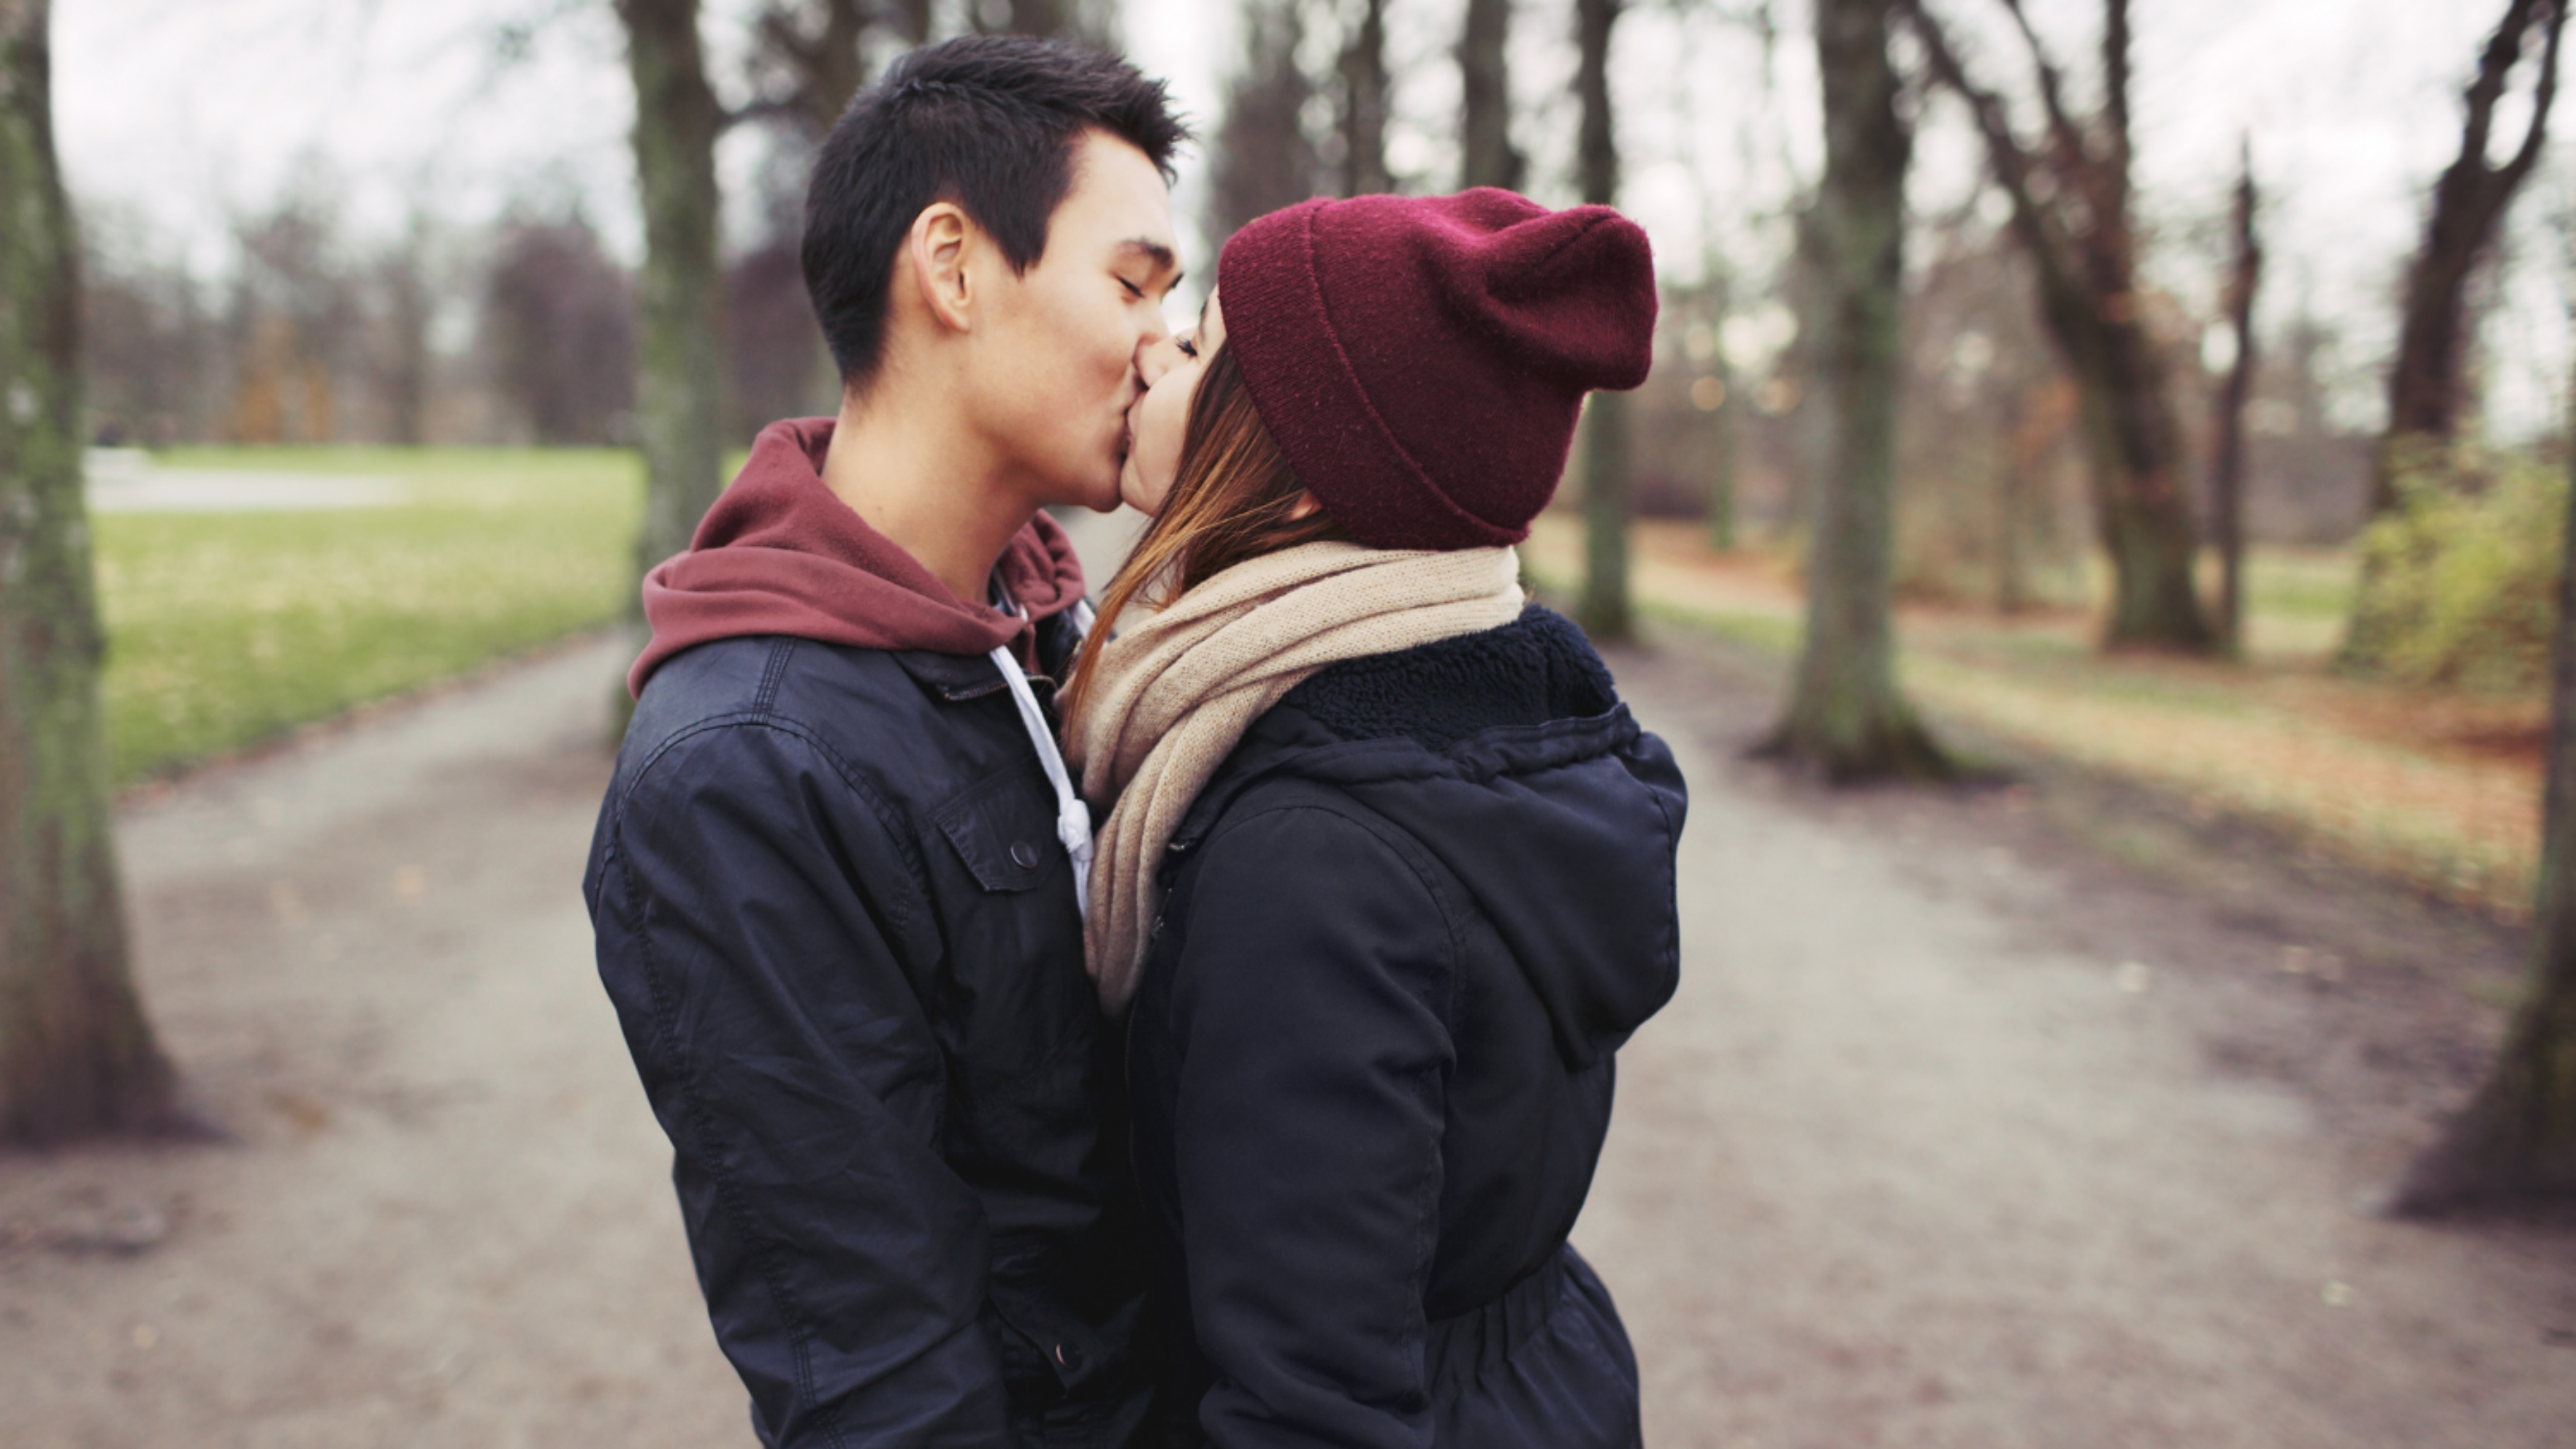 a young man and woman standing outside in a park, kissing